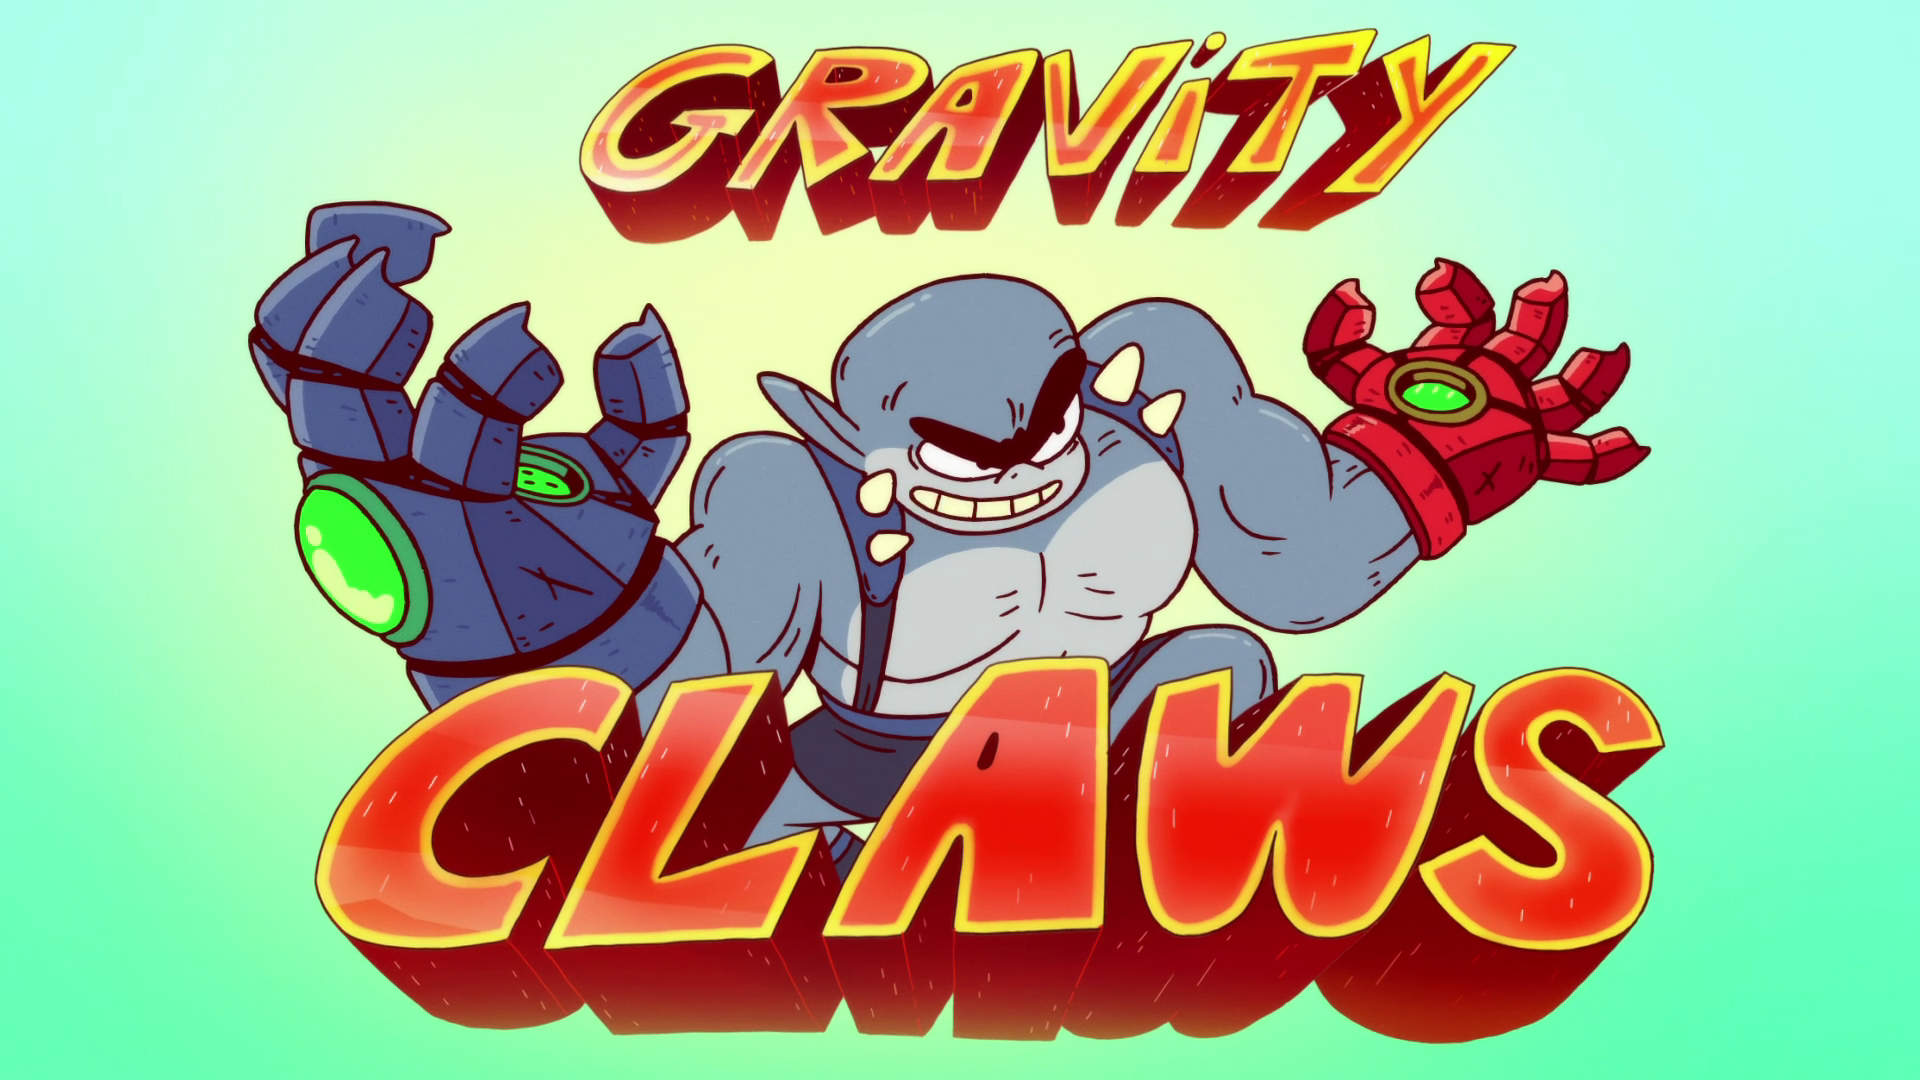 Gravity Claws